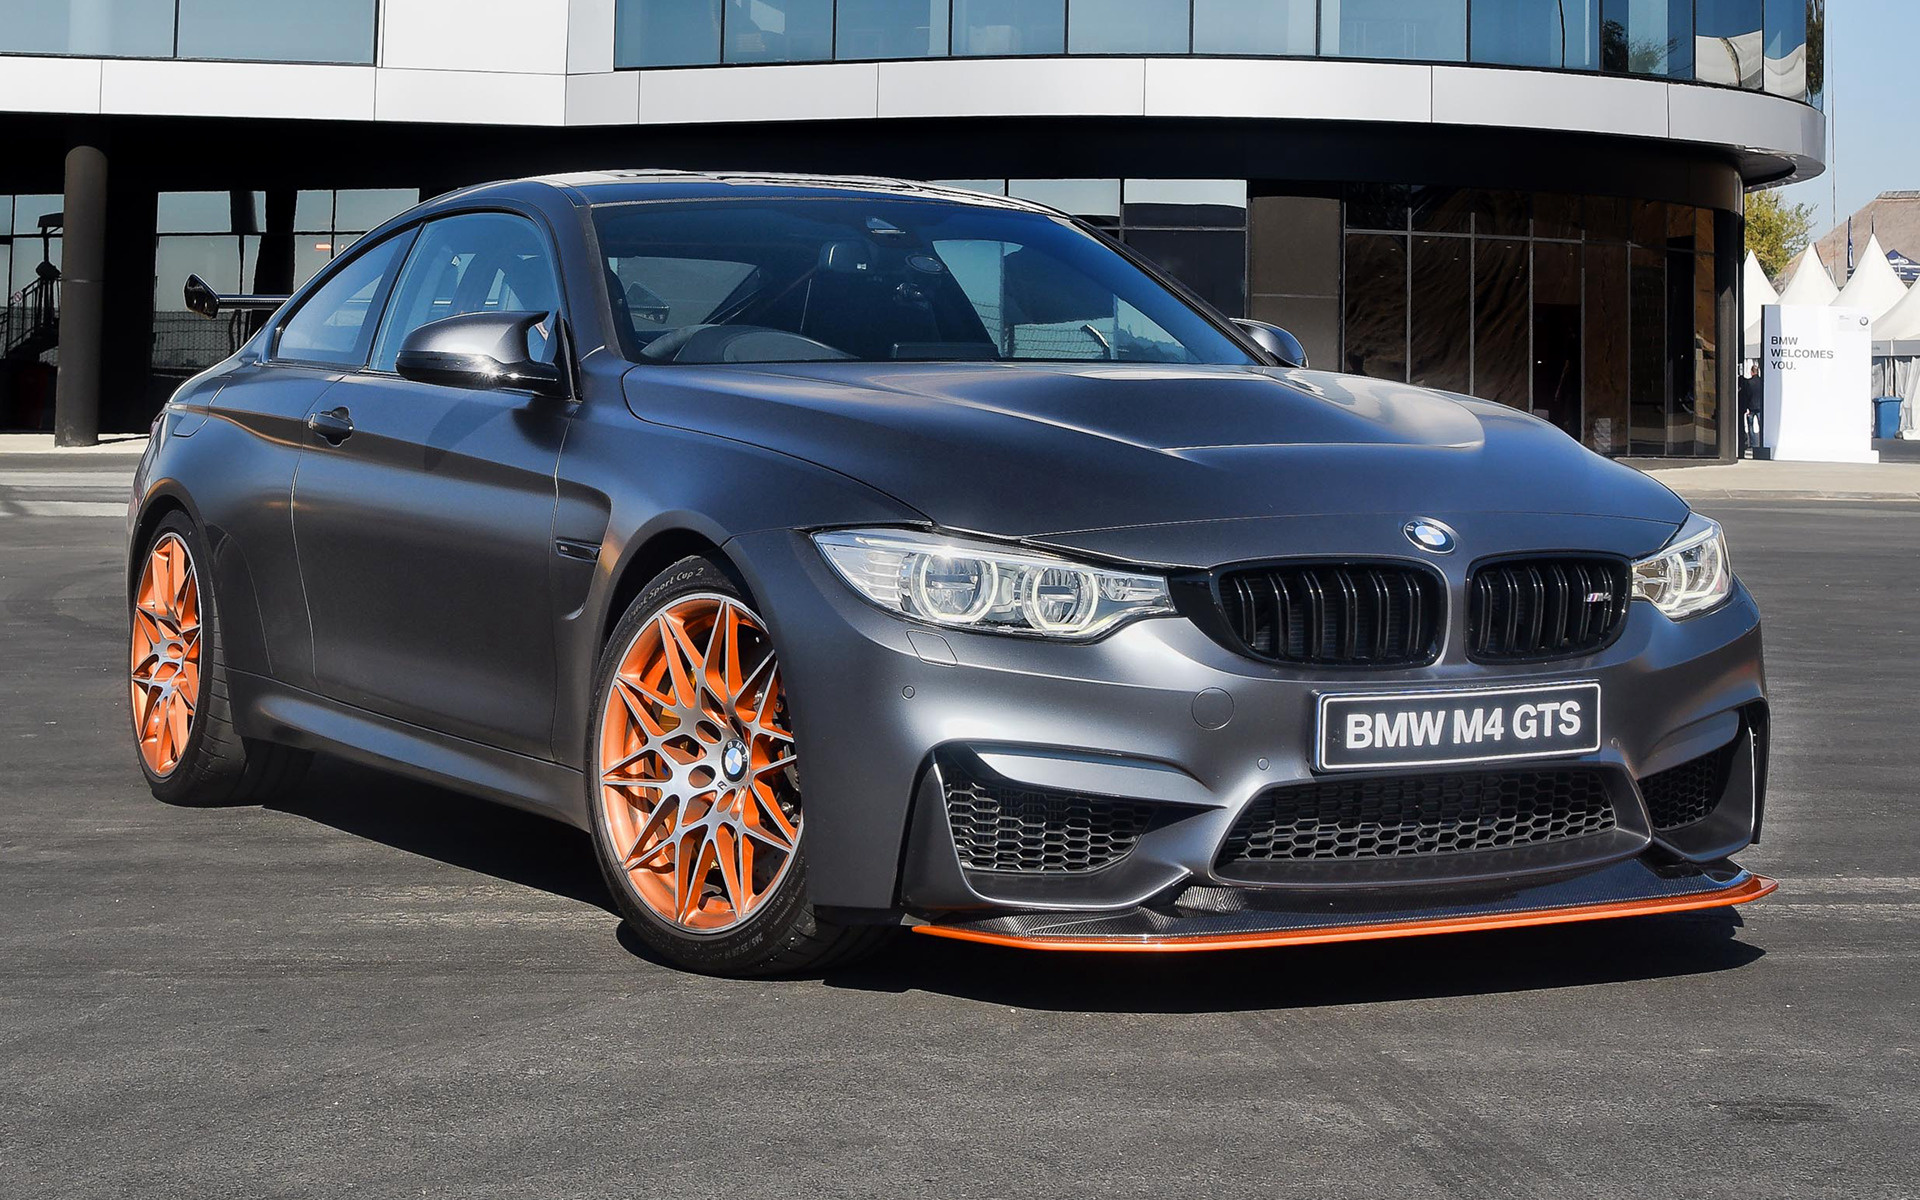 BMW M4 GTS (2016) ZA Wallpapers and HD Images - Car Pixel